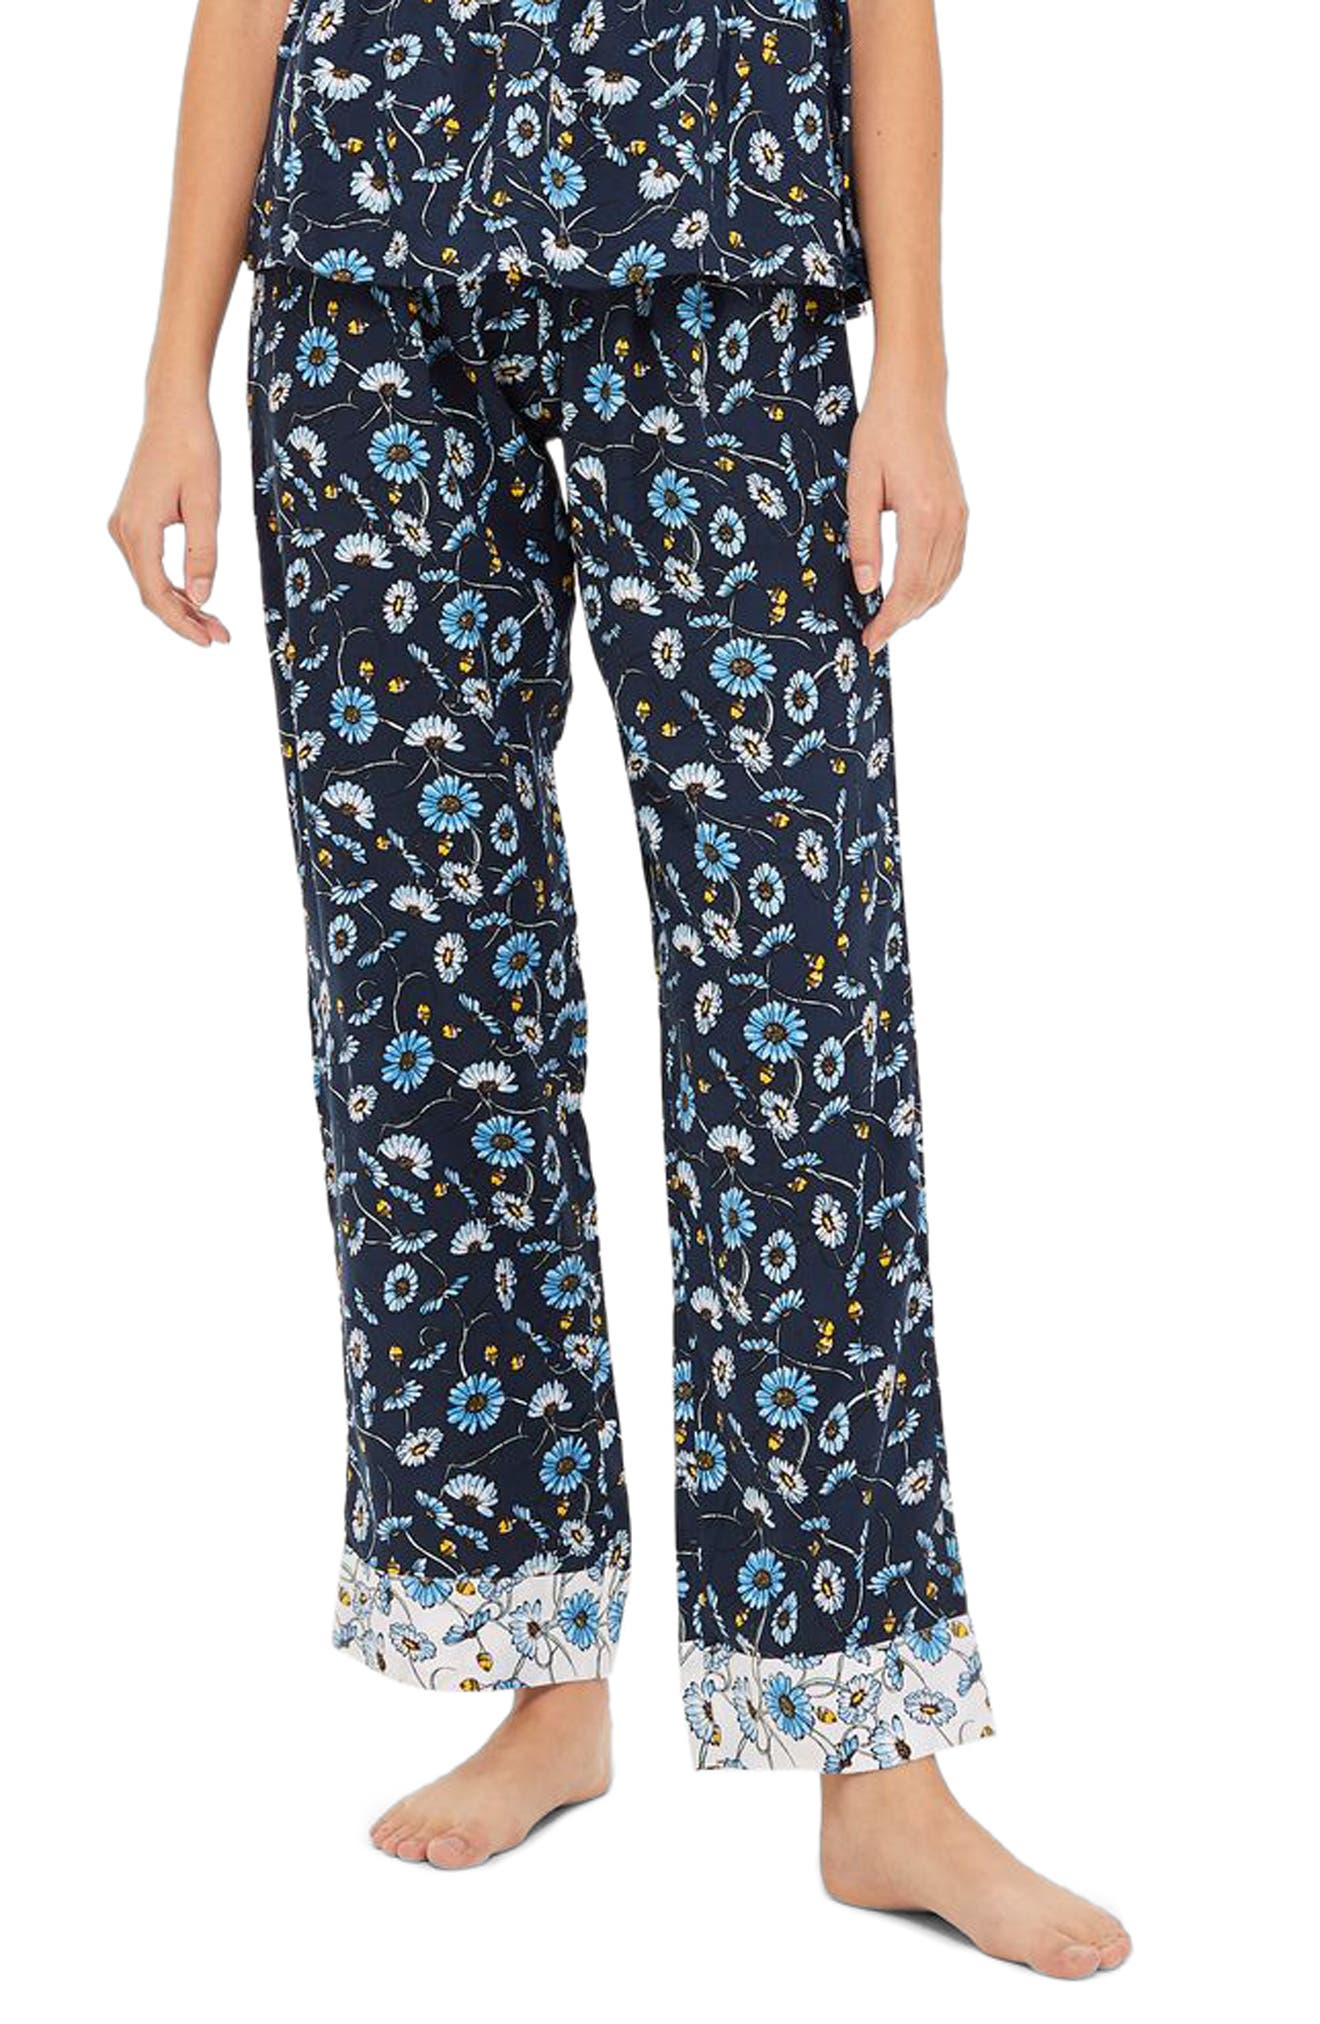 Floral Sleep Trouser Pajama Pants,                         Main,                         color, NAVY MULTI